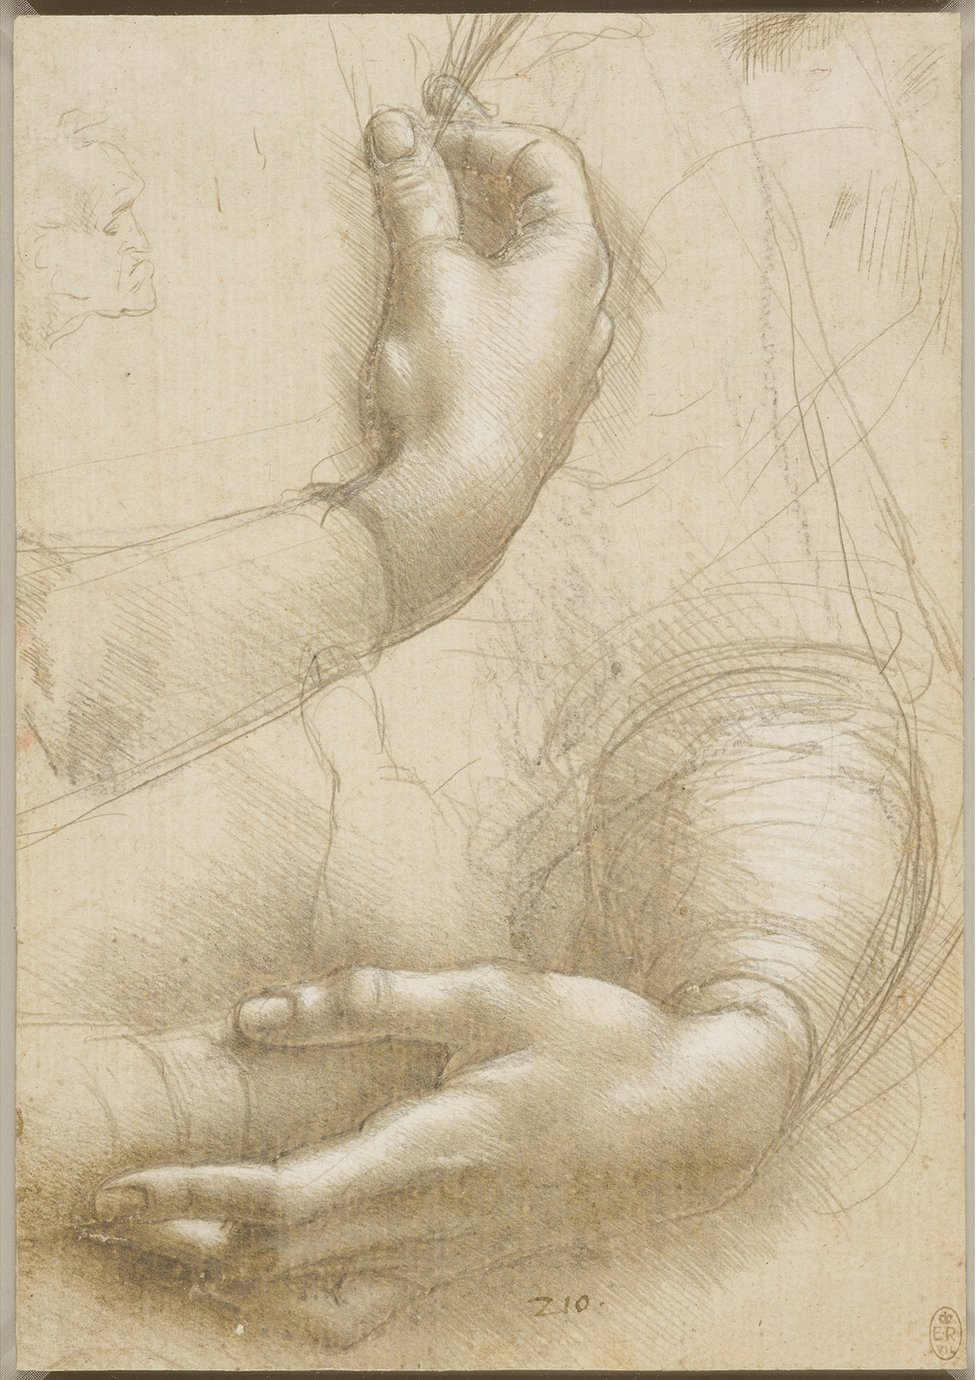 A drawing of a woman's hands by Leonardo da Vinci